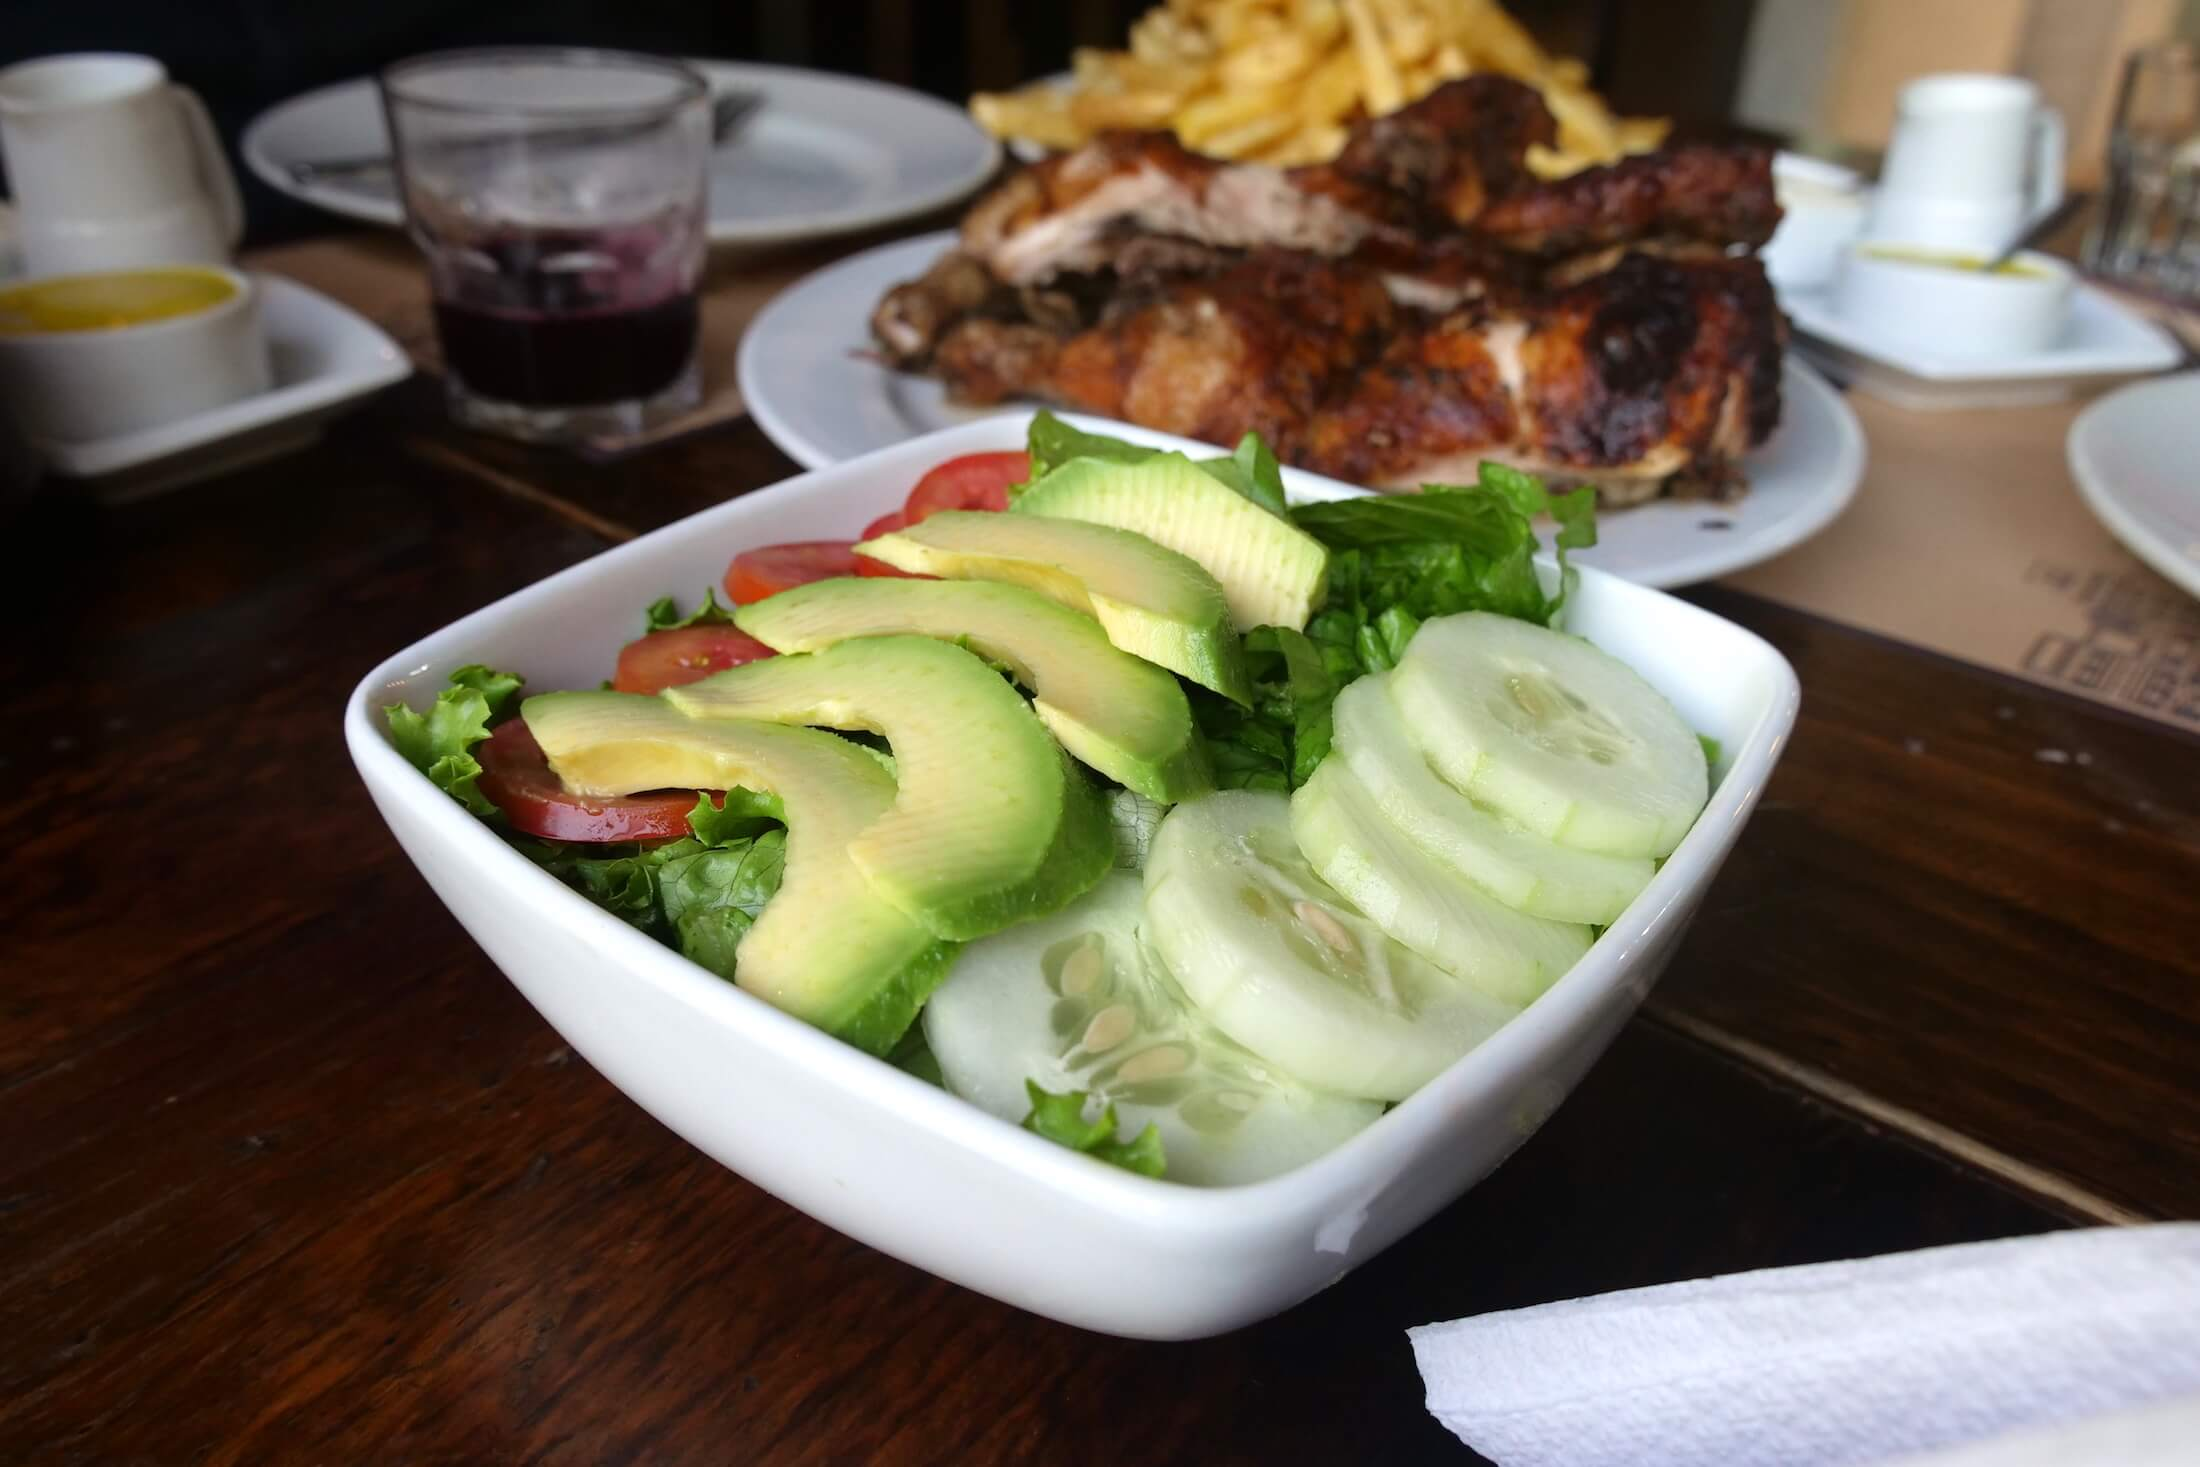 simple and clean plate of crunchy vegetables and avocado to accompany your Pollo a la Brasa